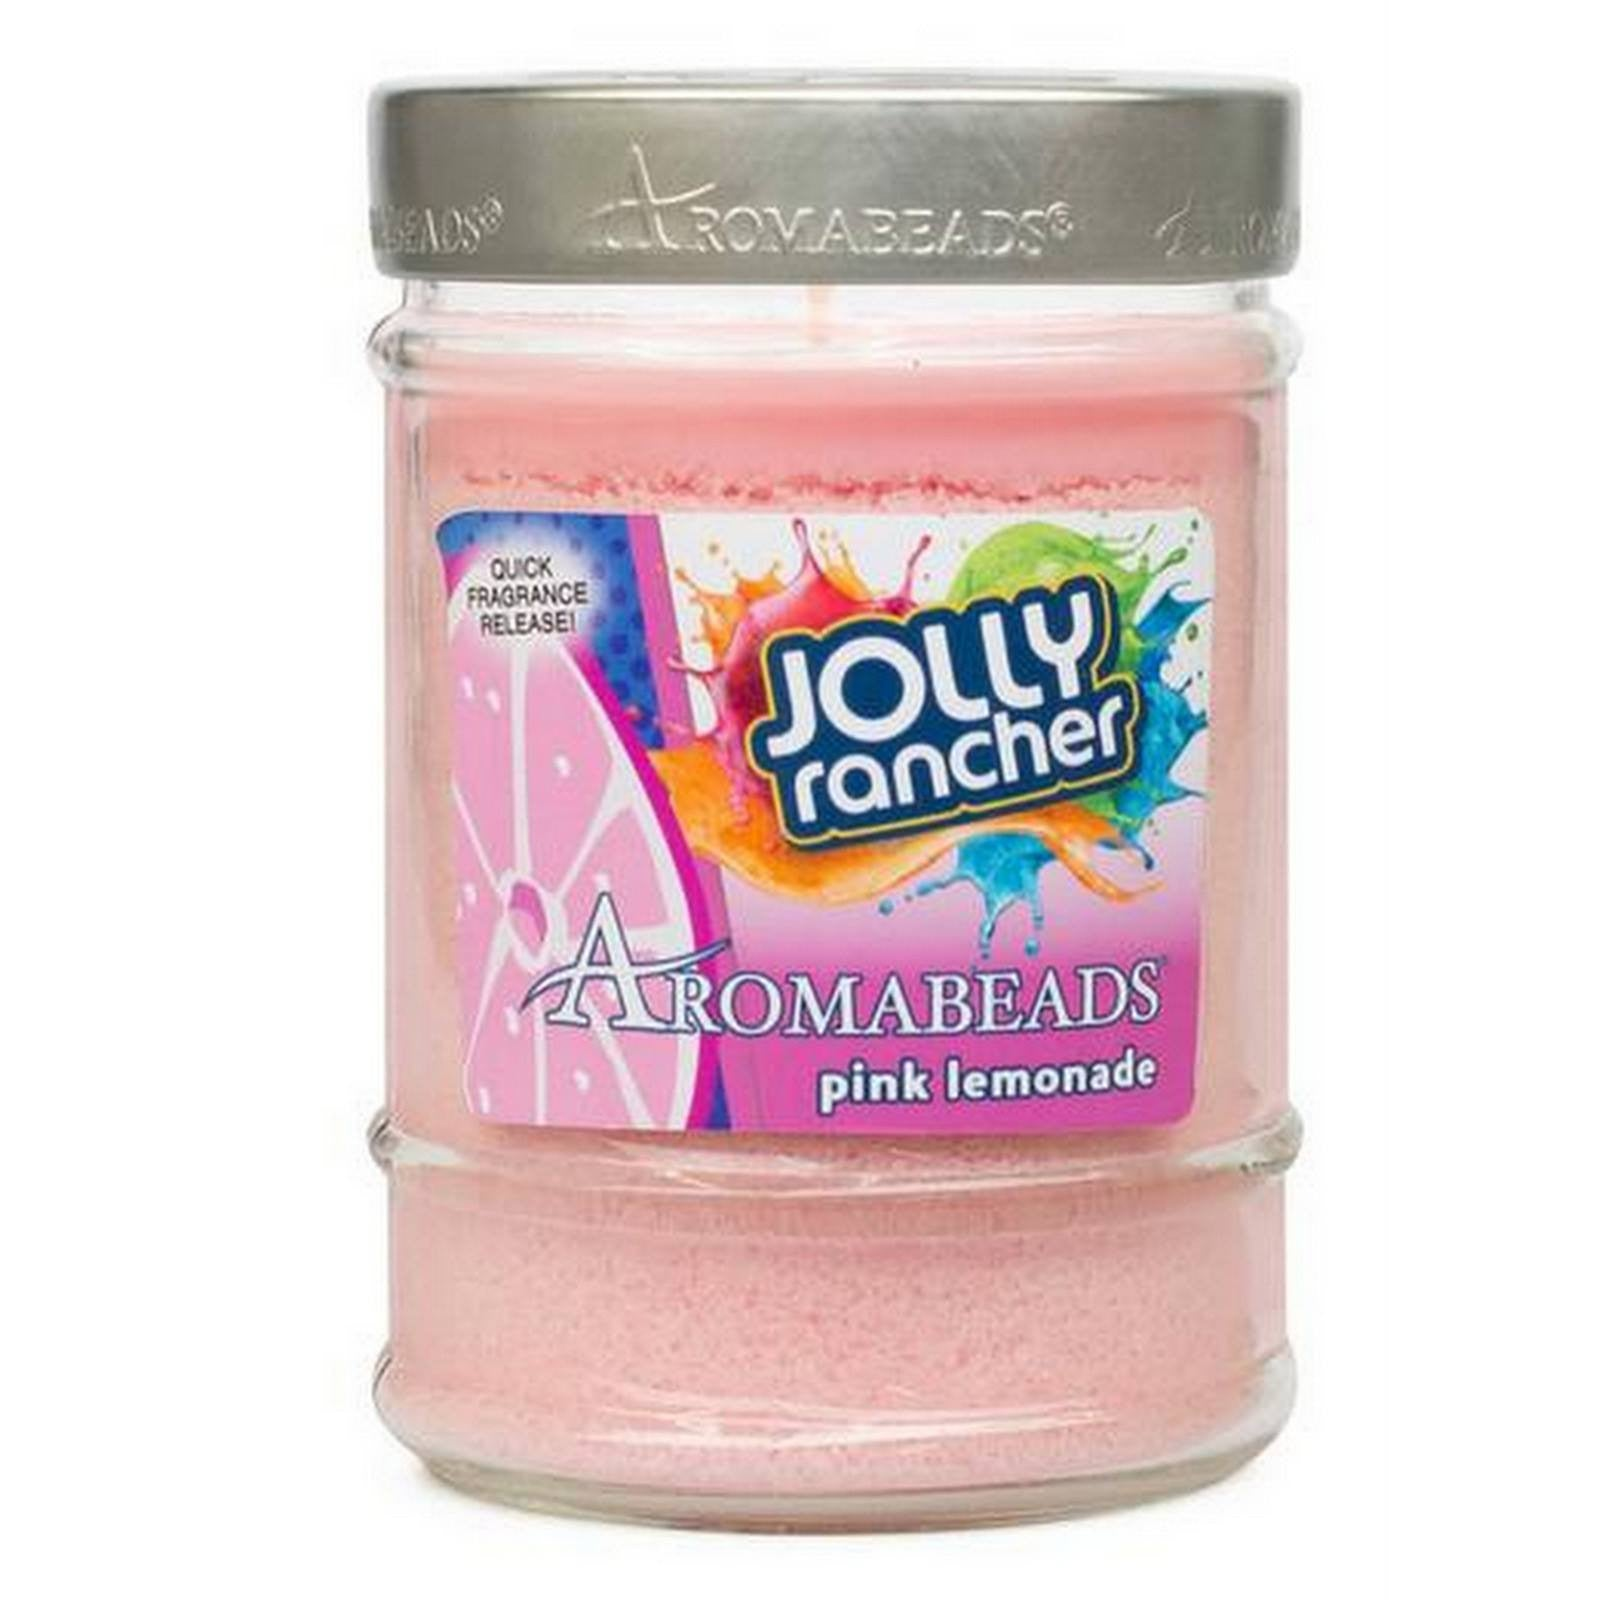 Aromabeads Jolly Rancher Pink Lemonade Scented Candle Aromabeads Candlemart.com $ 9.99